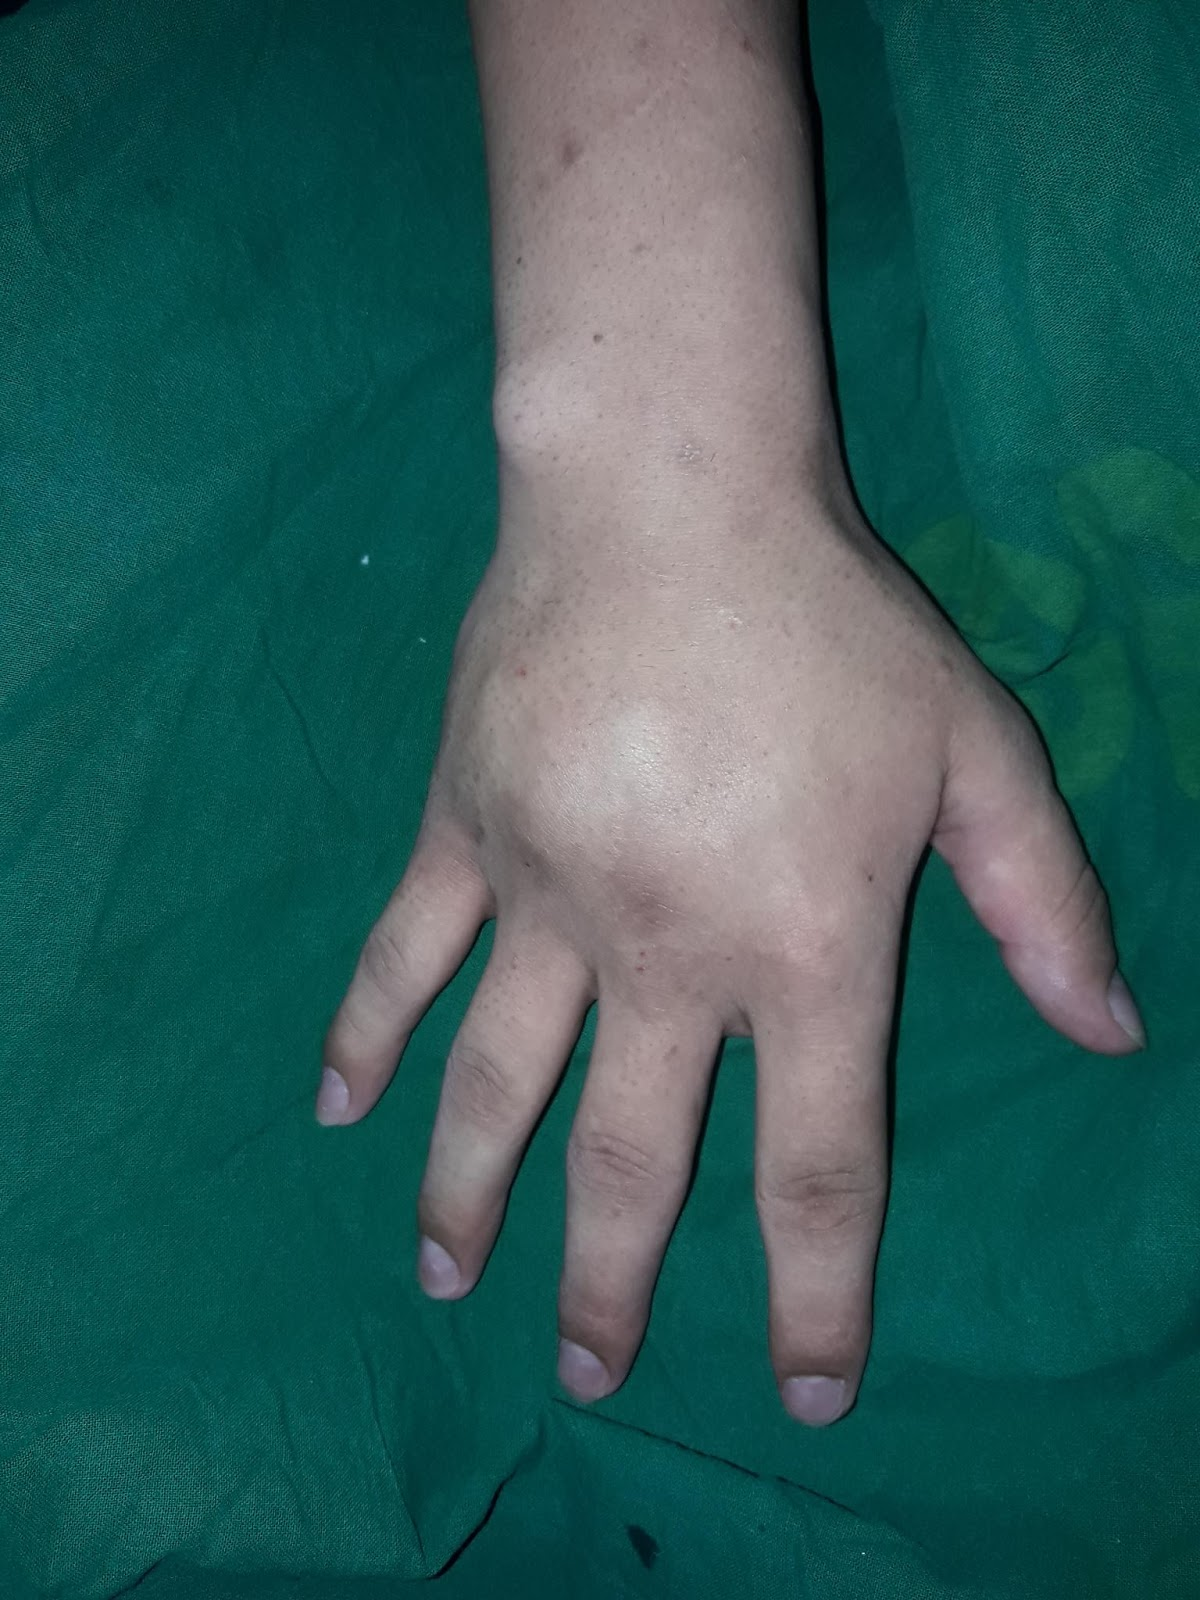 VIDHUNS PLASTIC SURGERY AND COSMETIC WORLD: Malunion # Metacarpal ORIF